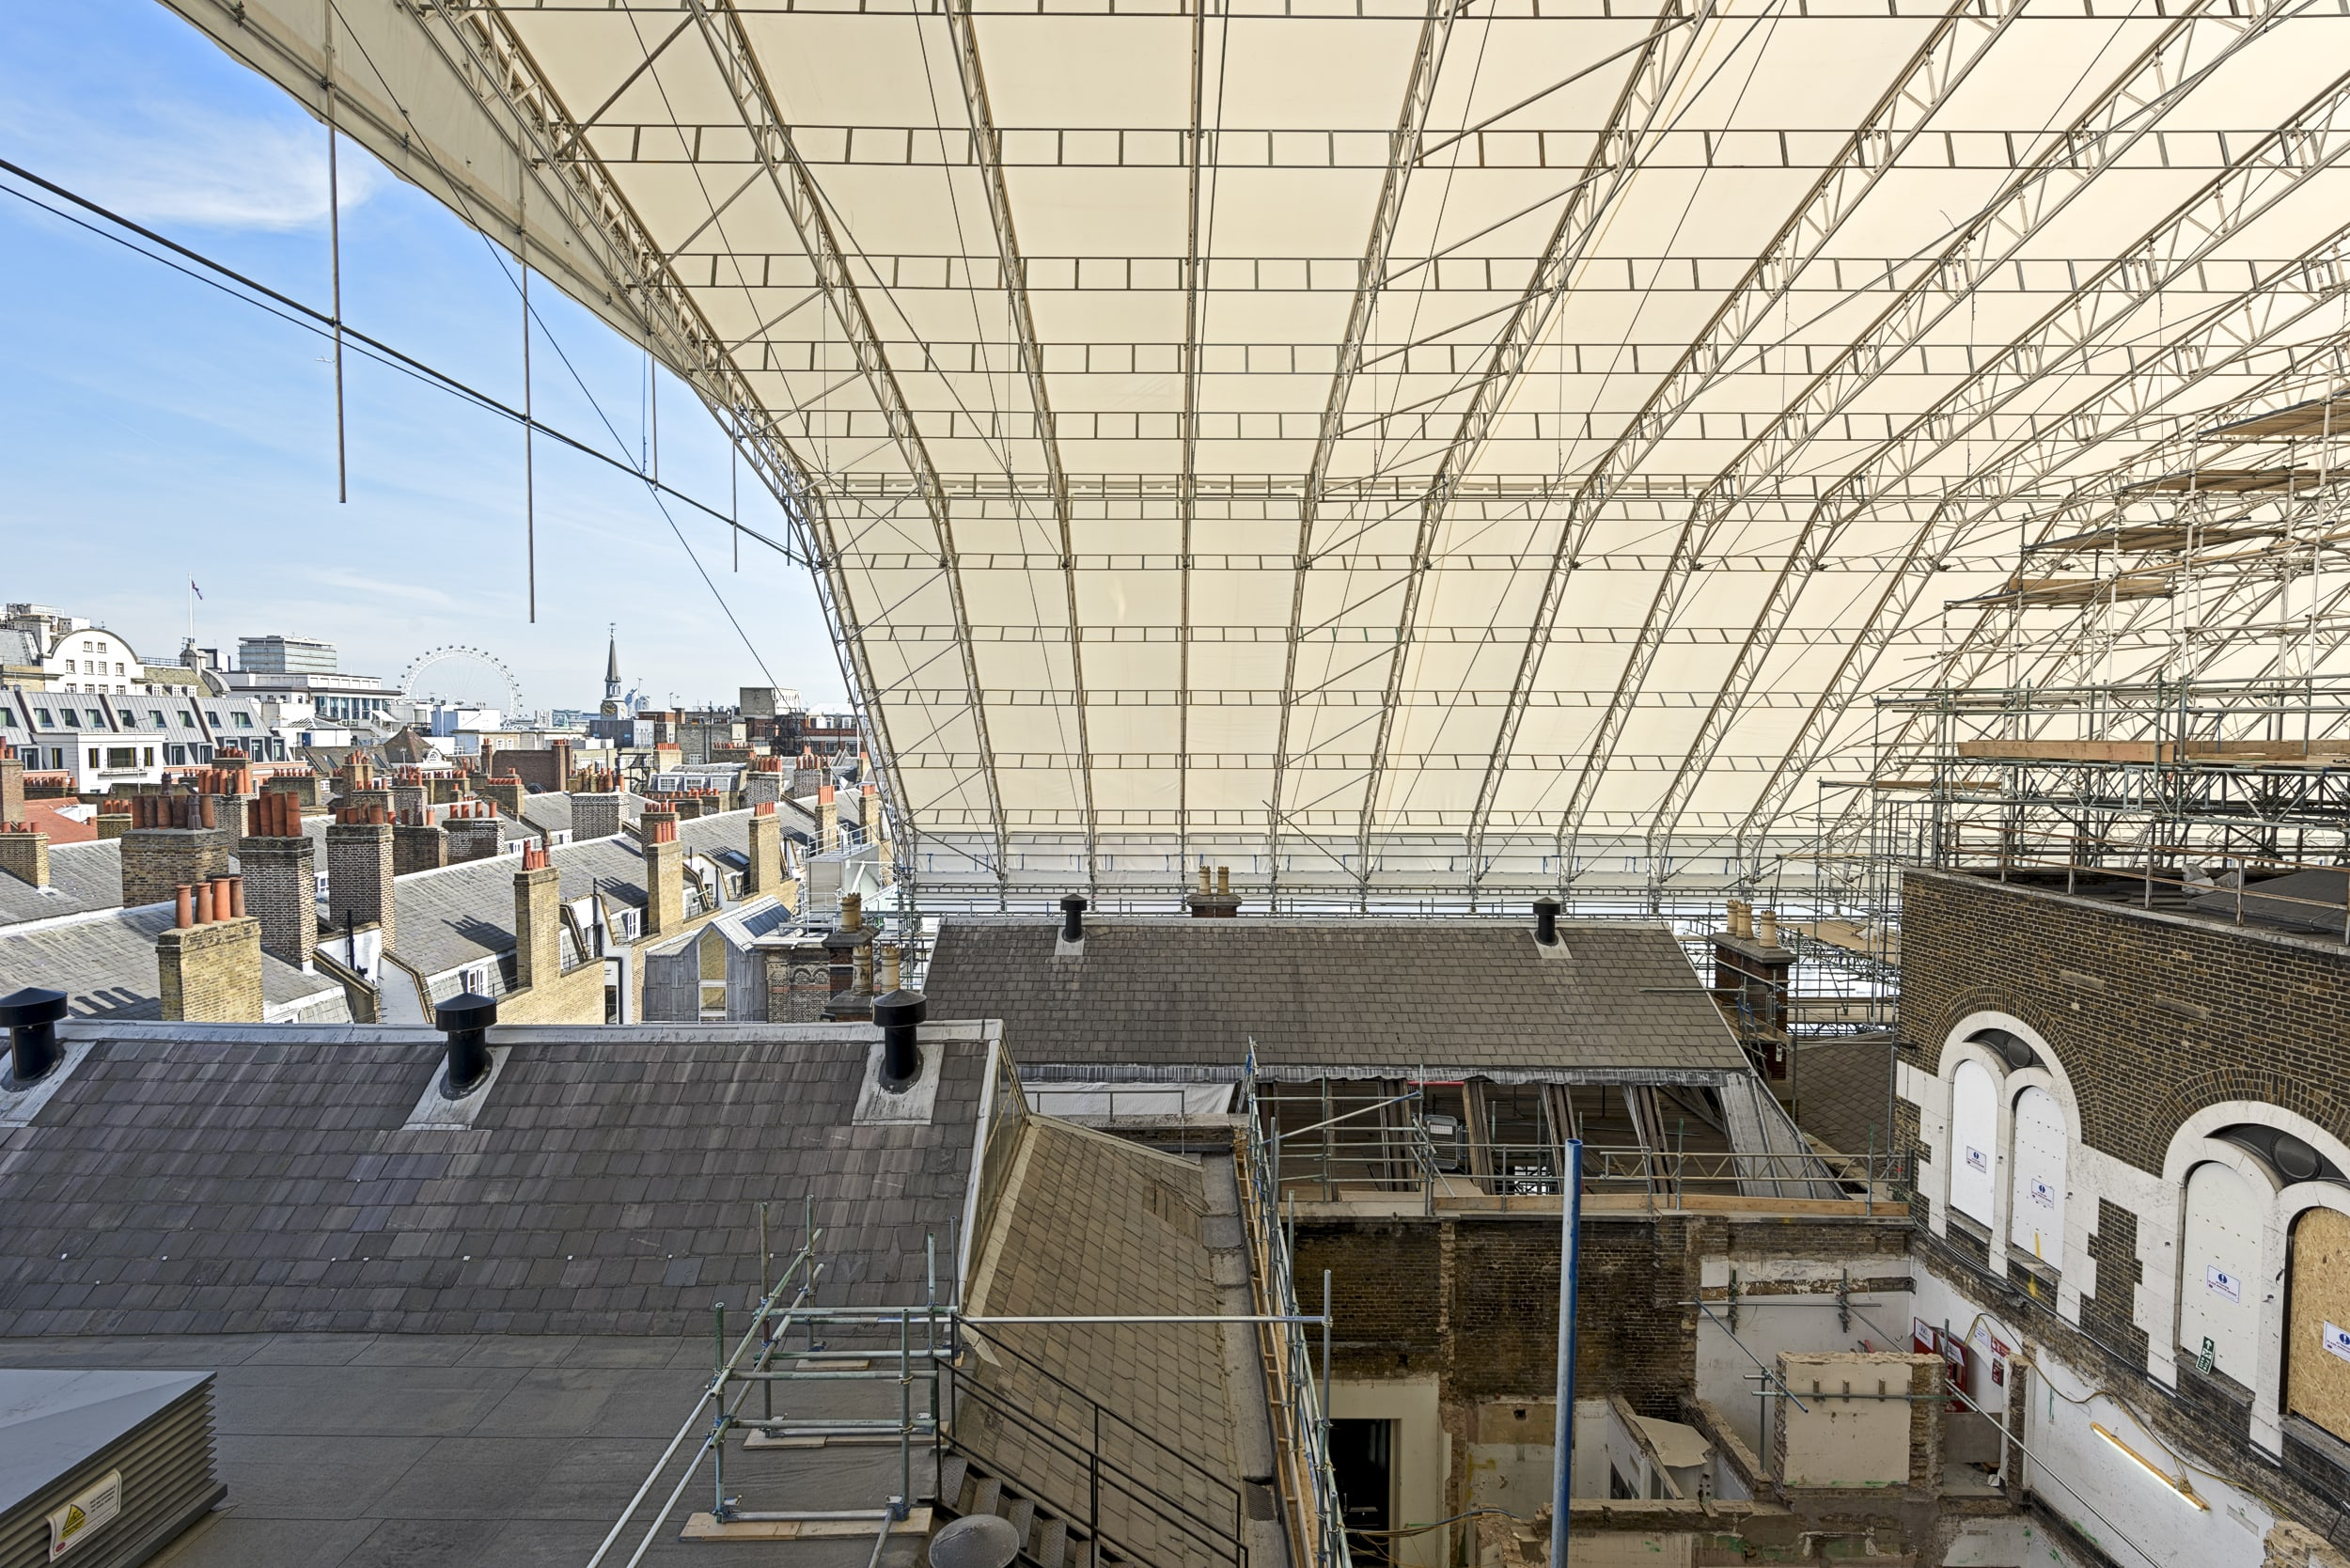 TEMPORARY ROOF OVER BURLINGTON GARDENS. COURTESY OF ROYAL ACADEMY OF ARTS © FRANCIS WARE